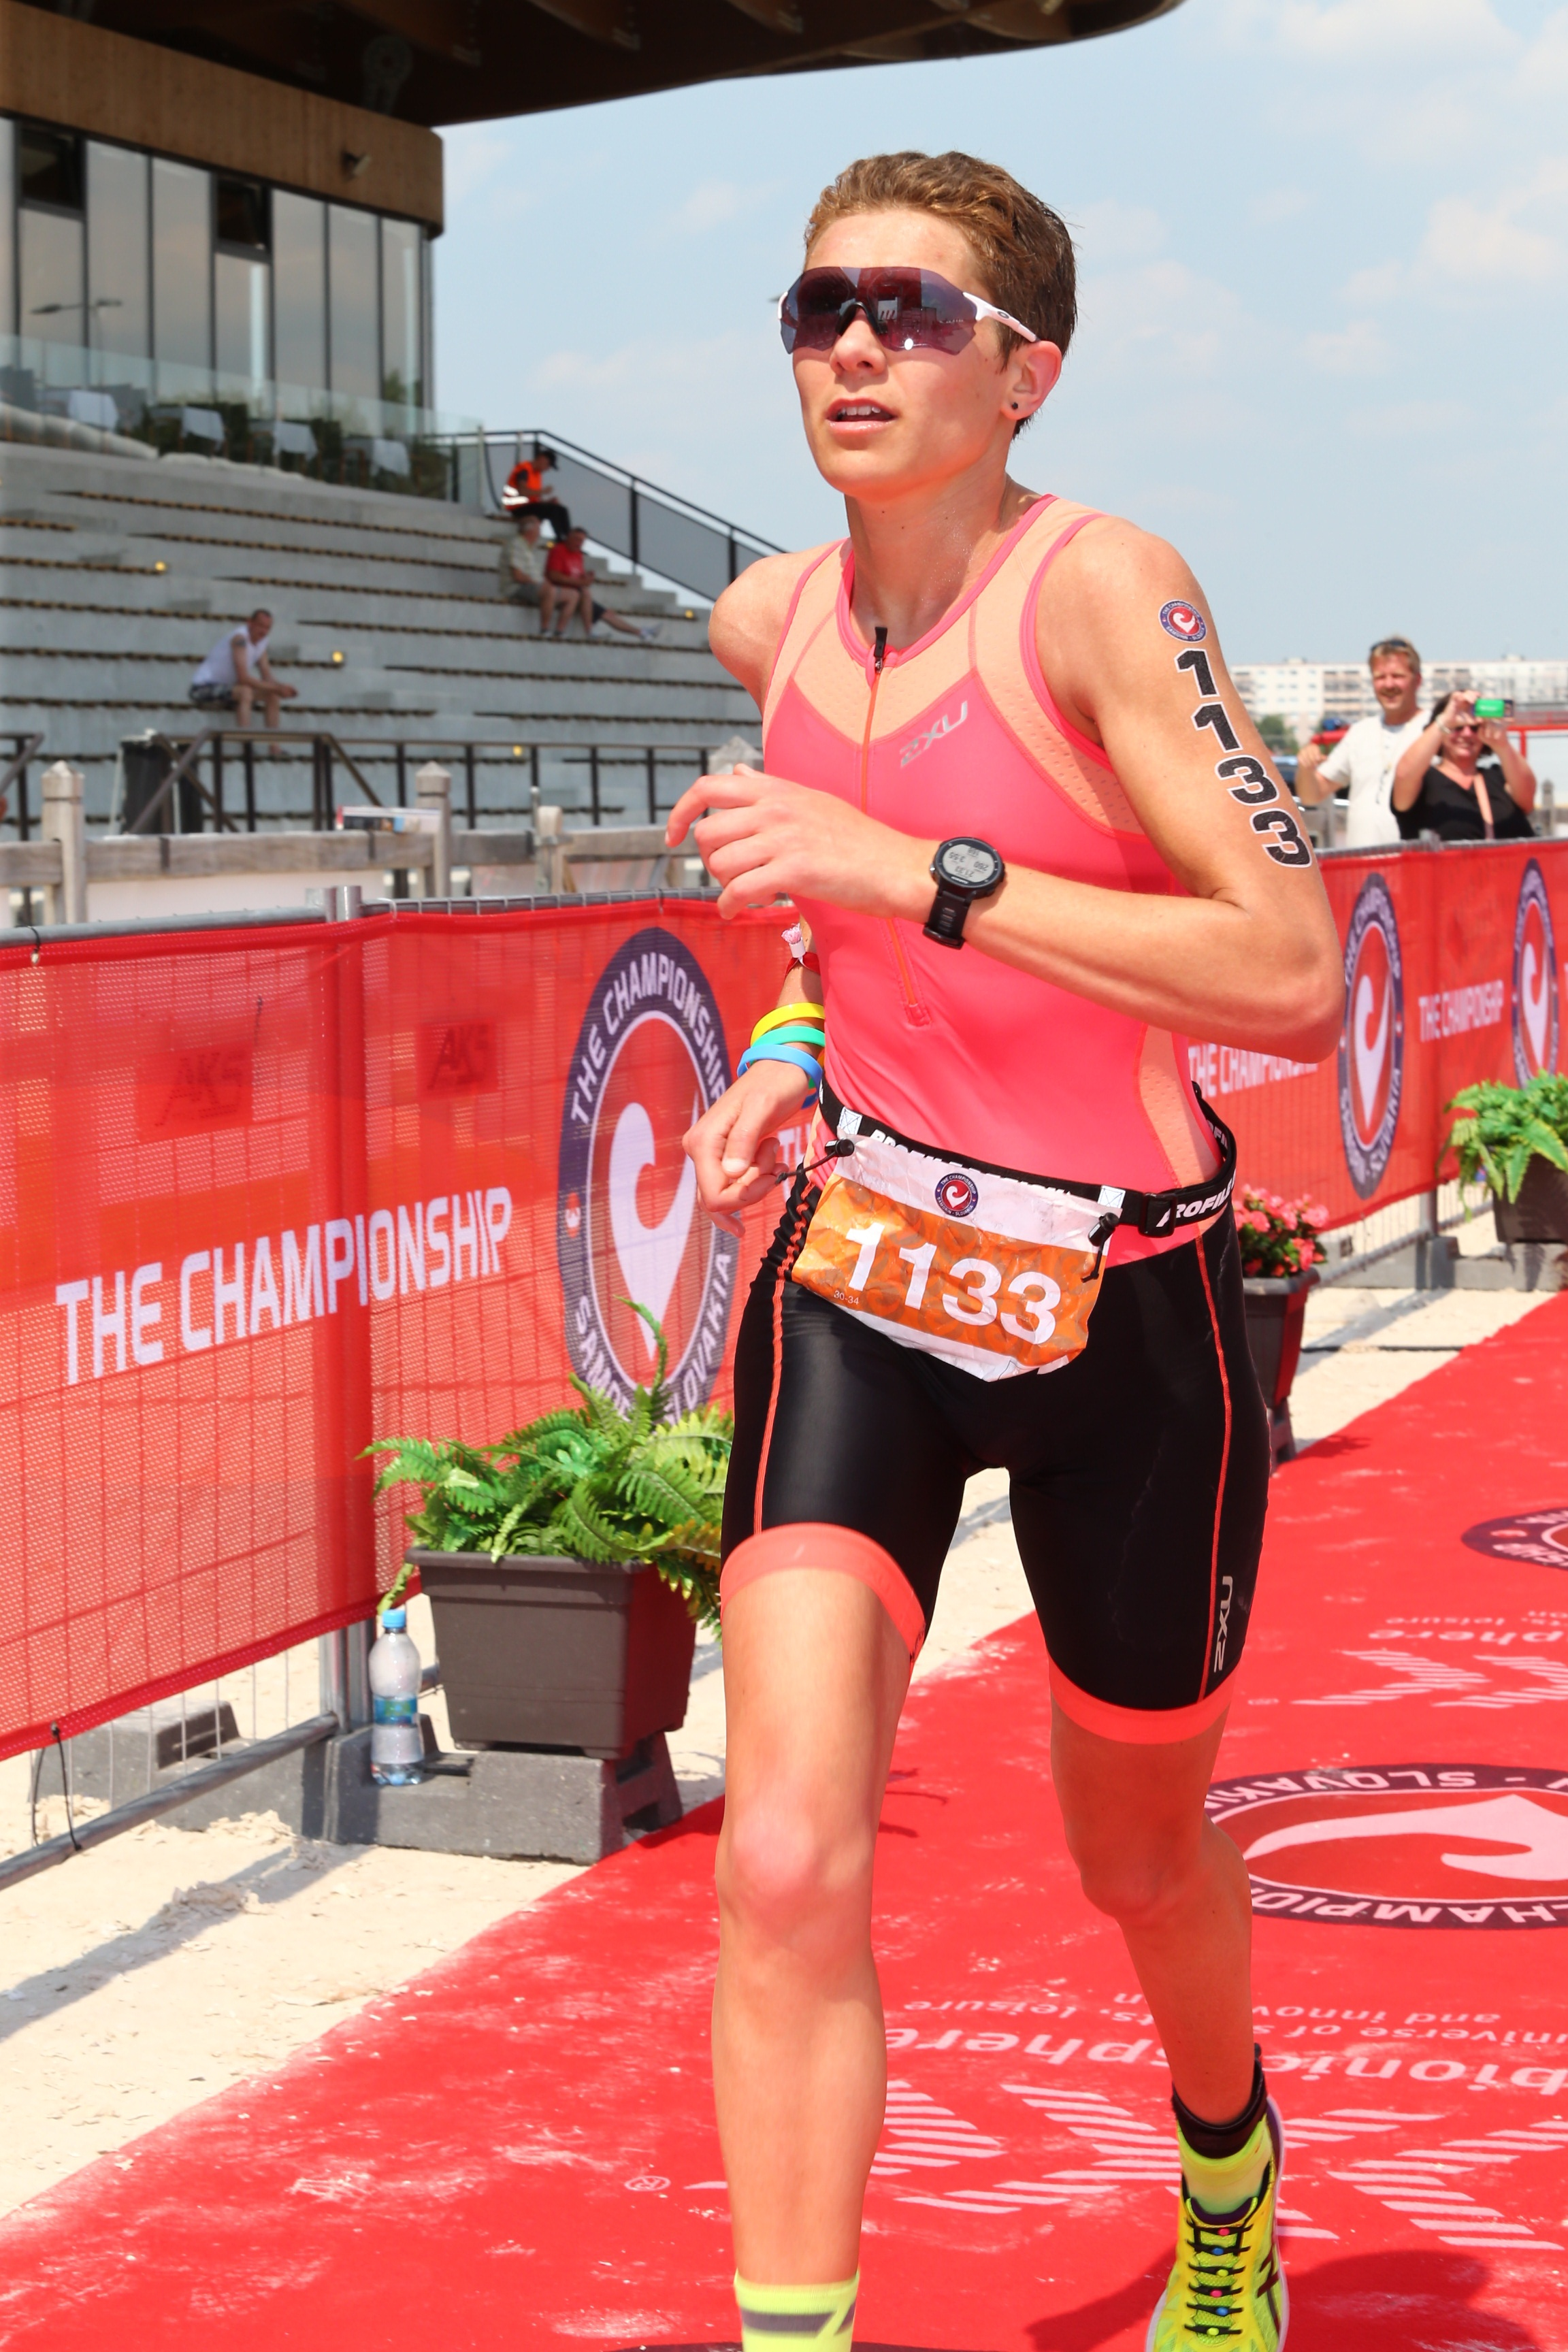 - A lot has changed in triathlon over the last 15 years.Aside from a brief flirtation with a not-quite-half-distance race in 2011, Challenge Samorin was my first foray back into swimbikerun since the New Zealand National Championships in March 2003. Back then Roth had just become the very first Challenge event, and the newest 'brand' in long-distance triathlon racing was a long way from the Family's current incarnation - 44 full and half distance events in 26 countries, and a solid Challenger (pun intended!) to the dominance of Ironman. The Championship - a half-distance event held in Samorin, Slovakia - was billed as Challenge's very own 'world champs', and could be seen as another strategic move to build the competitiveness of the brand even further. Just like the 70.3 Worlds, The Championship required qualification from another Challenge Family event, with the pro field being stacked by a solid prize pool of €150,000 (and likely a few juicy appearance fees as well…). So all in all this race wasn't exactly the low-key start to my 'second triathlon career' that I initially envisaged...but thanks to the generosity of the HUUB team I was gifted a sponsor spot on the start line, and I just can't say no to a freebie!